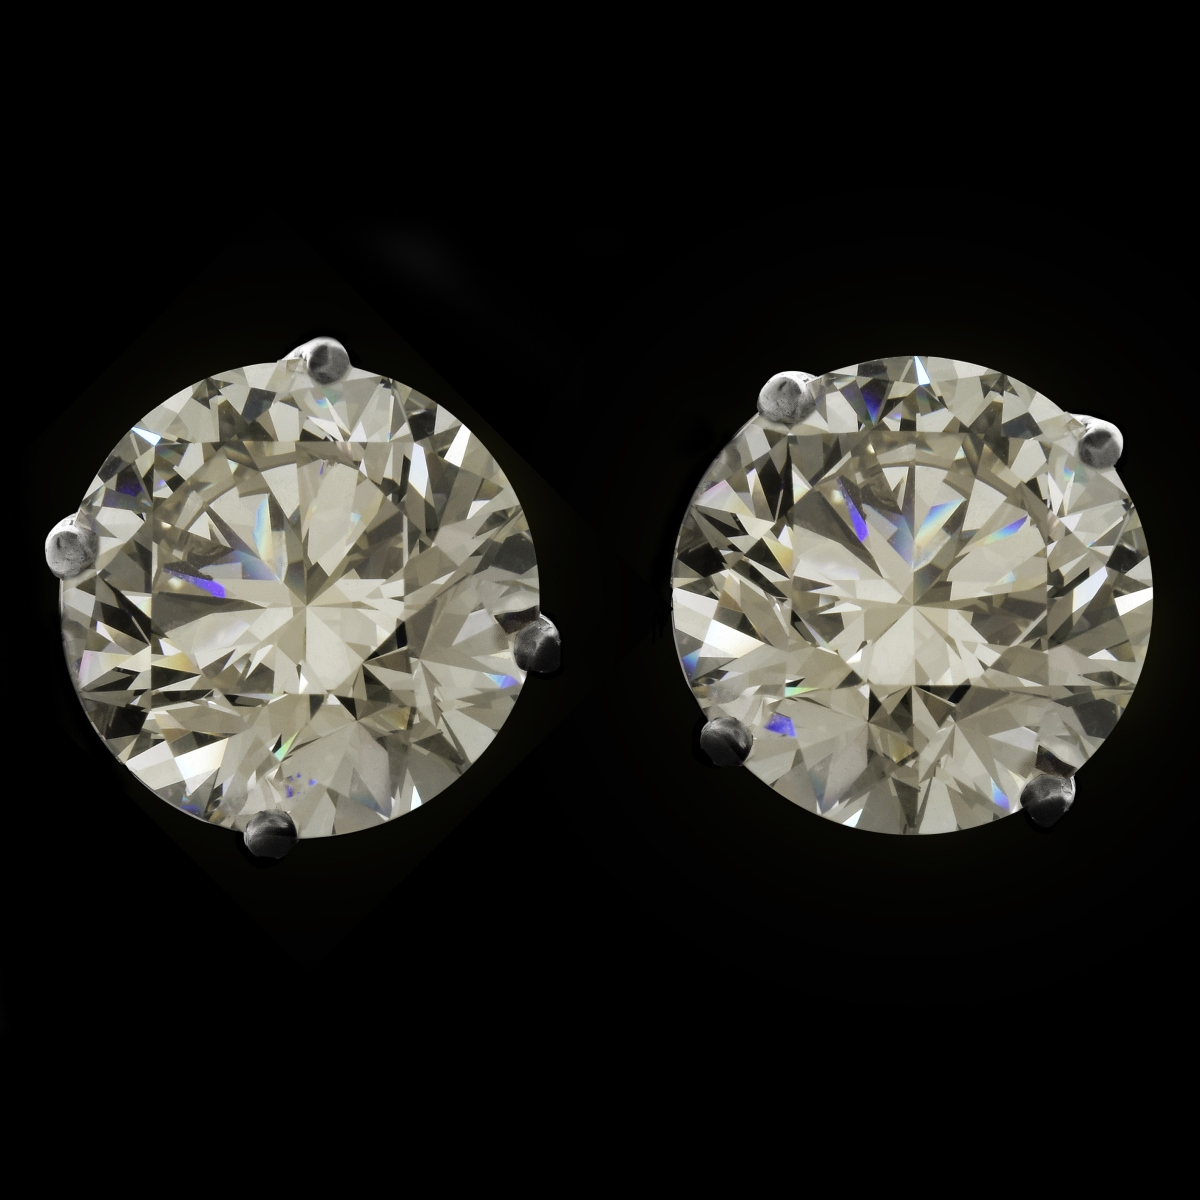 15.37ct Diamond Ear Studs